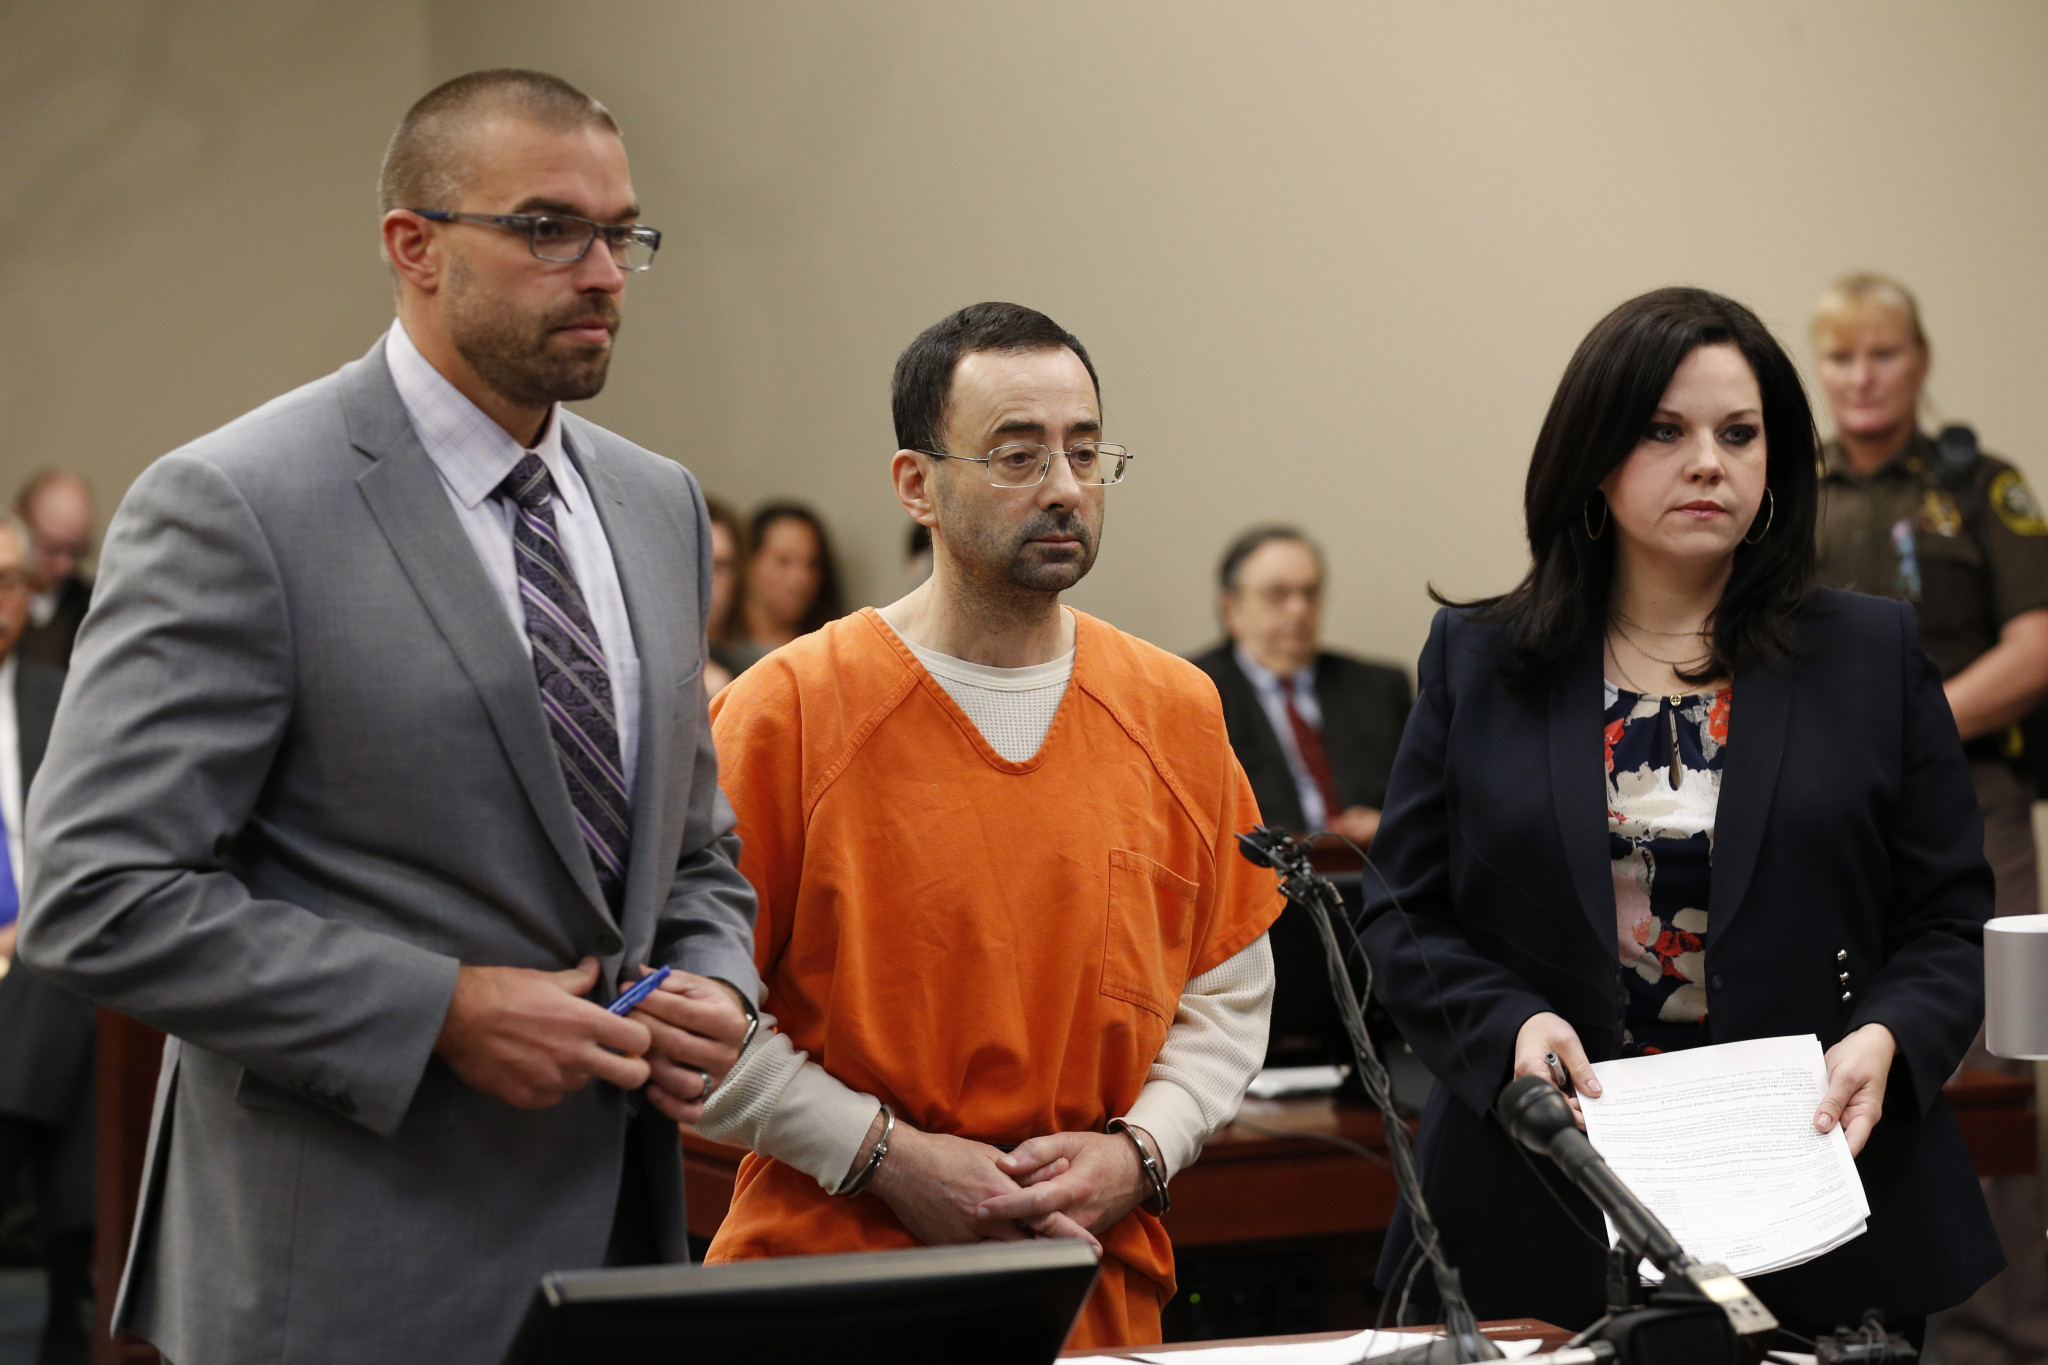 Former USA Gymnastics doctor sentenced to 60 years in prison for child abuse images